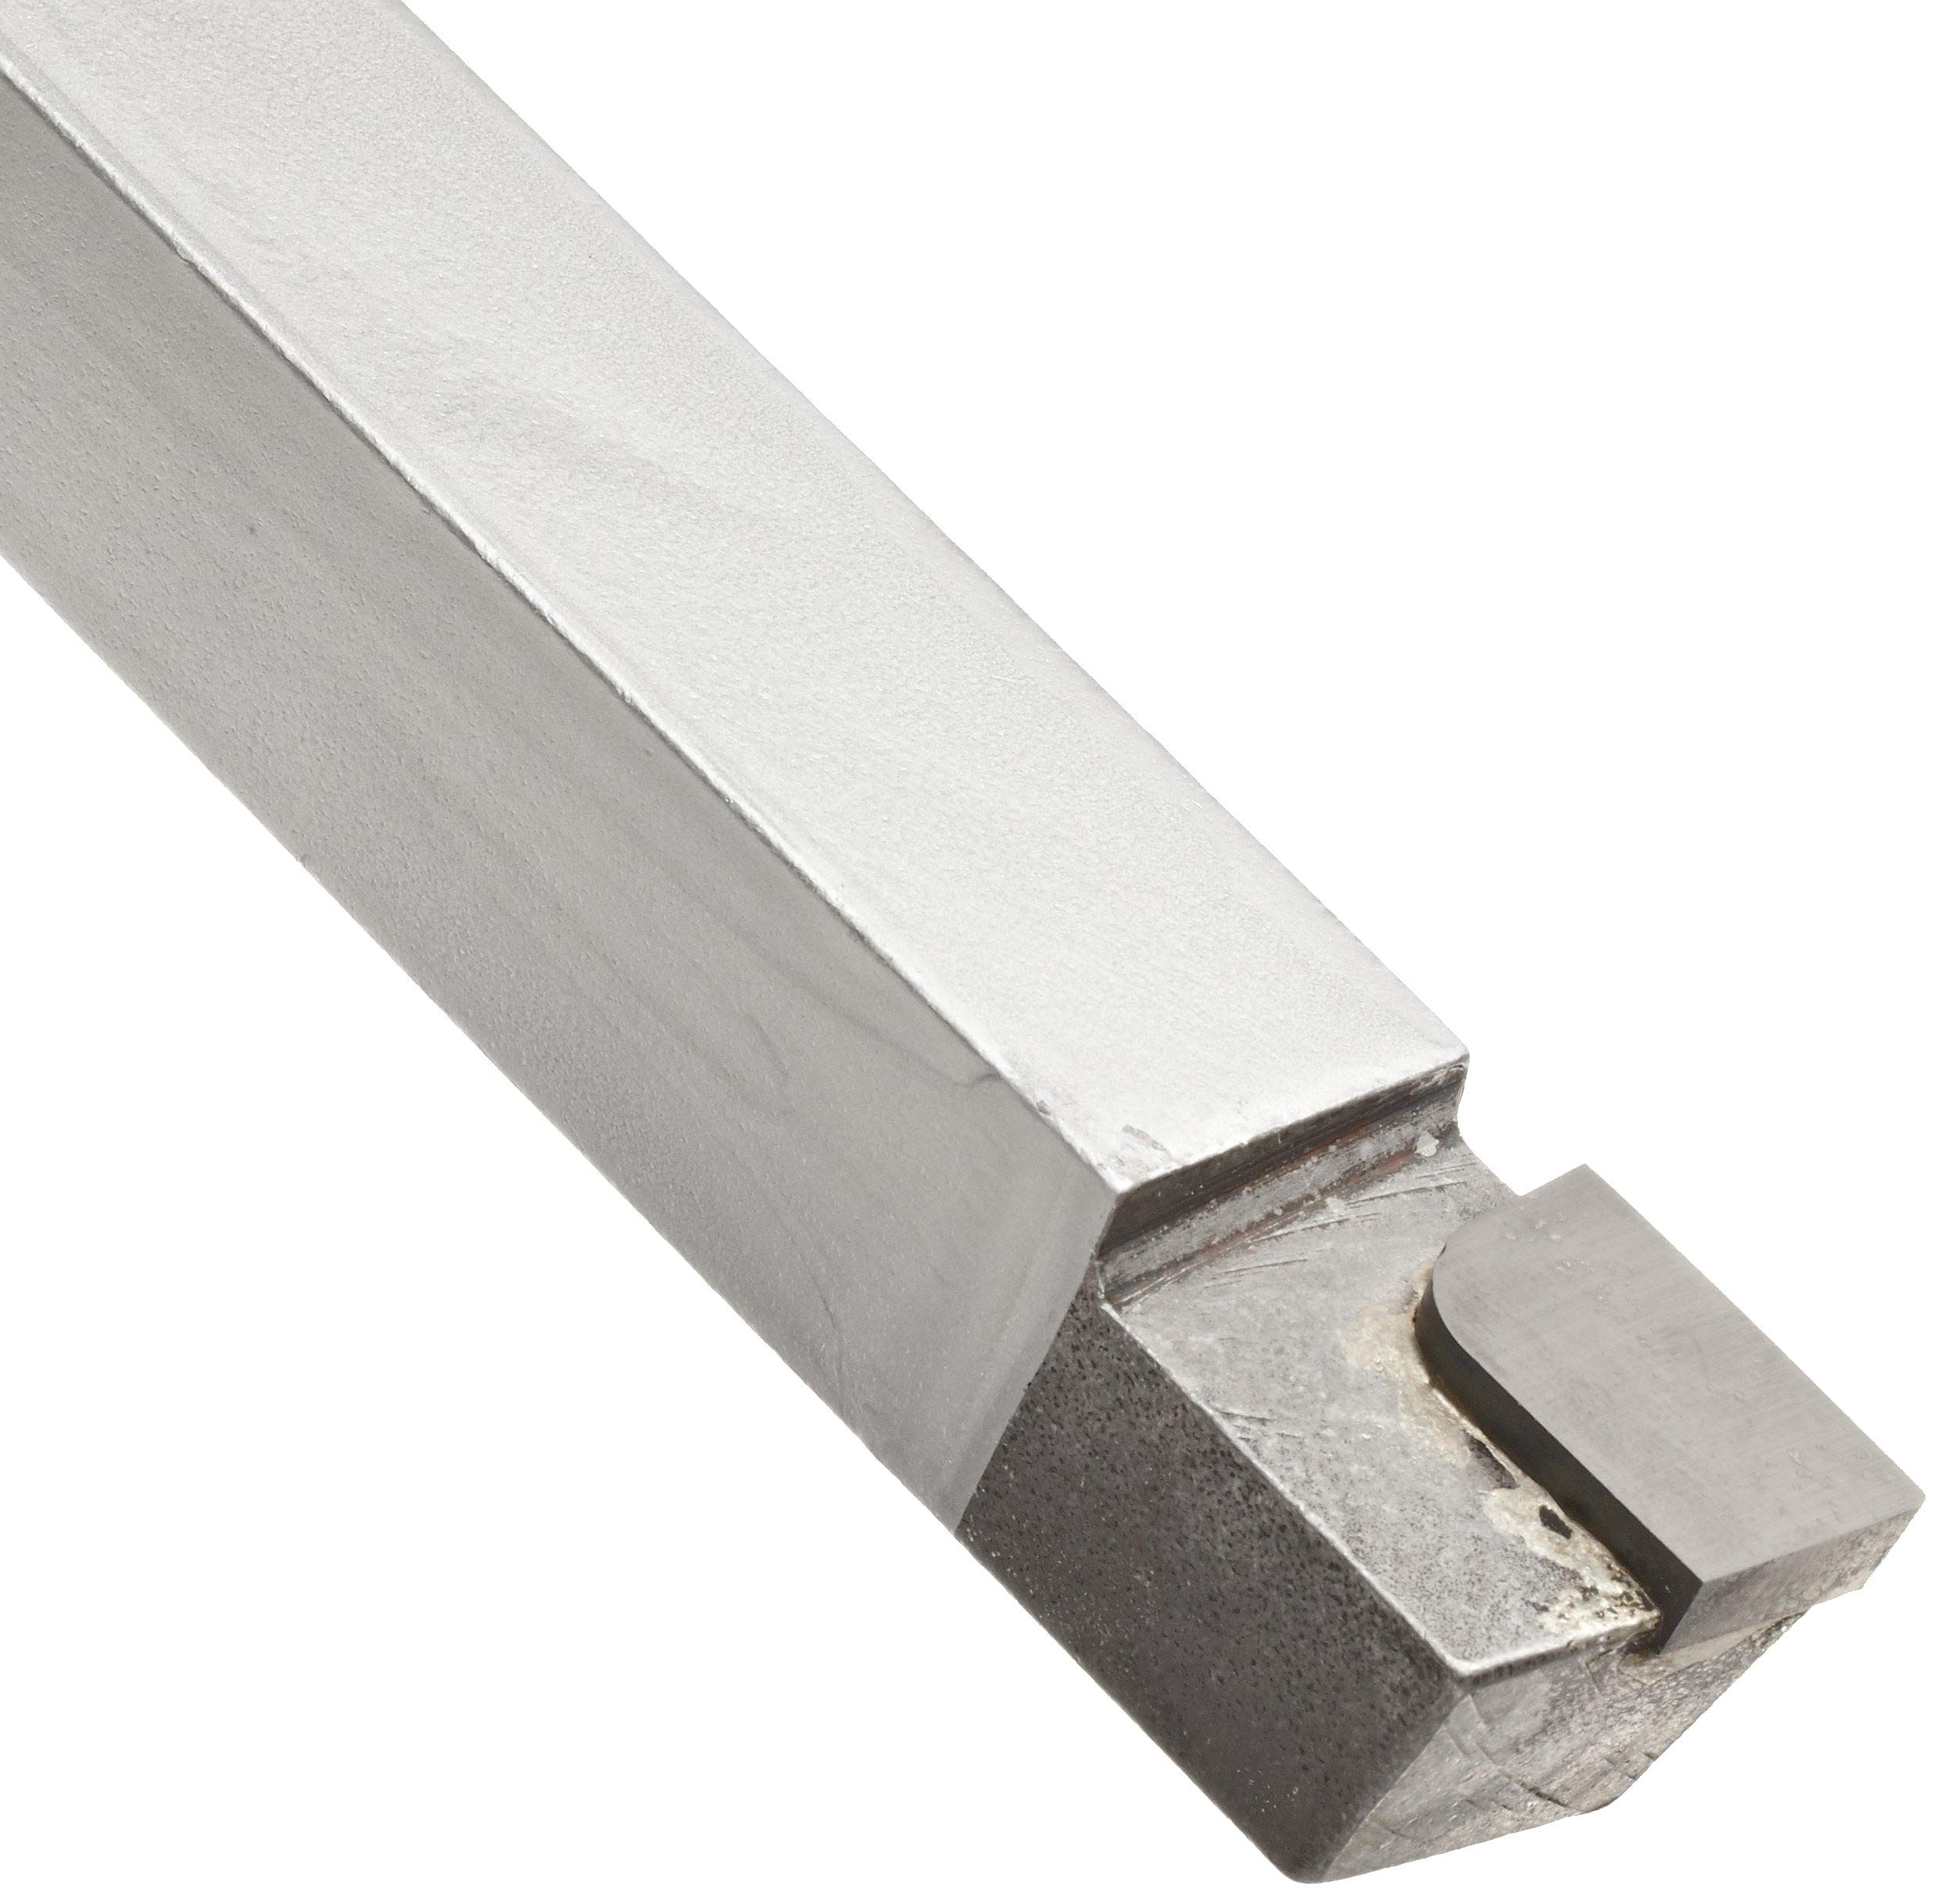 American Carbide Tool Carbide-Tipped Tool Bit for Straight Turning, Right Hand, C2 Grade, 0.25'' Square Shank, AR 4 Size